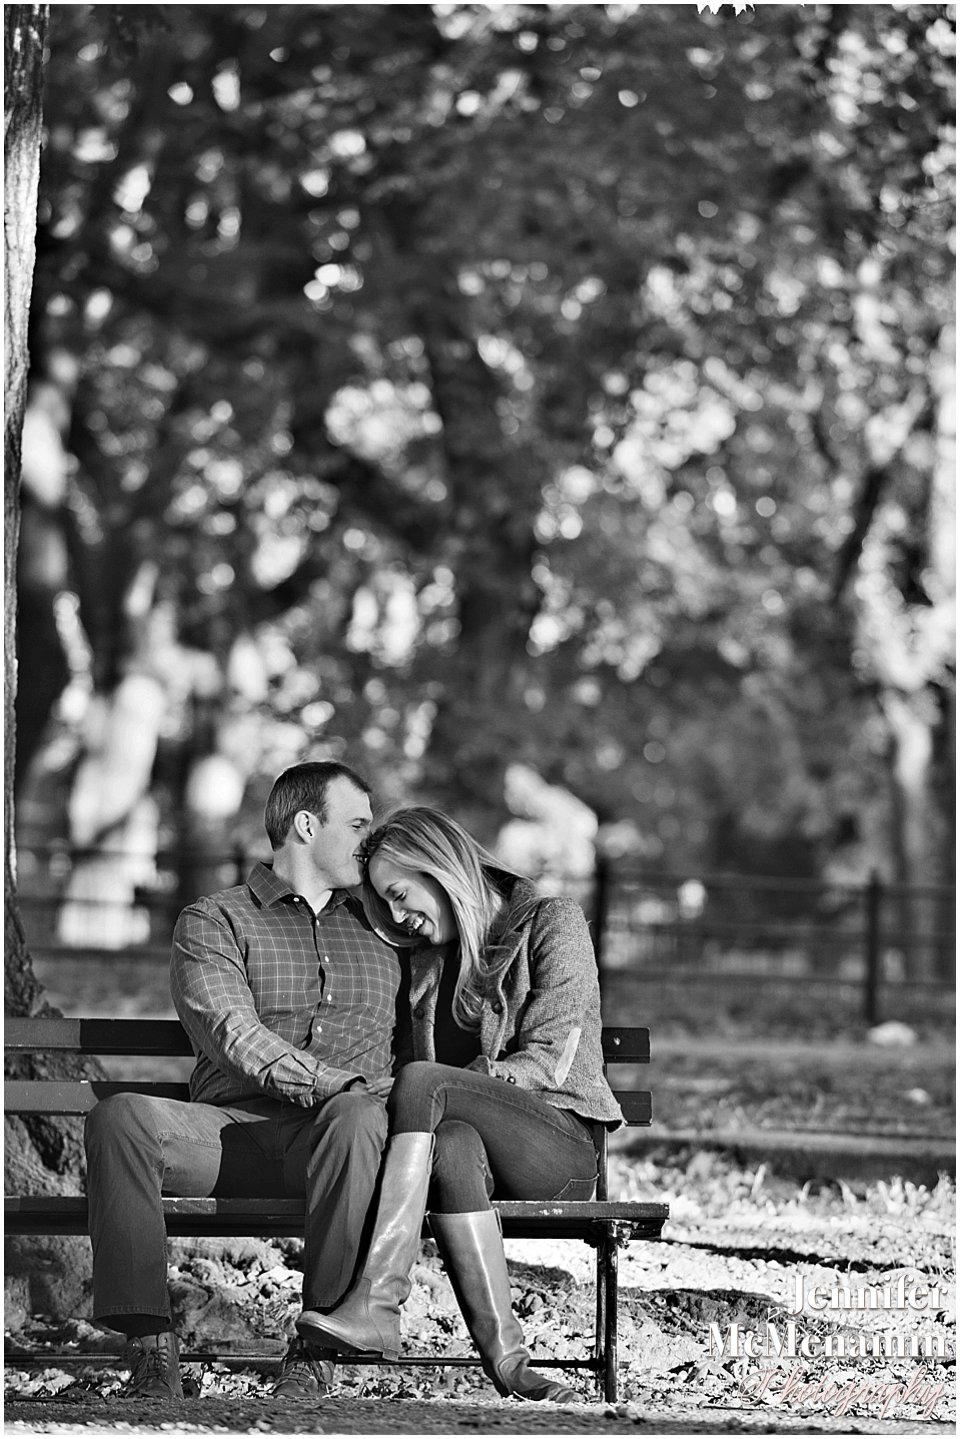 008-jennifer-mcmenamin-photography-nyc-engagement-photos_0006